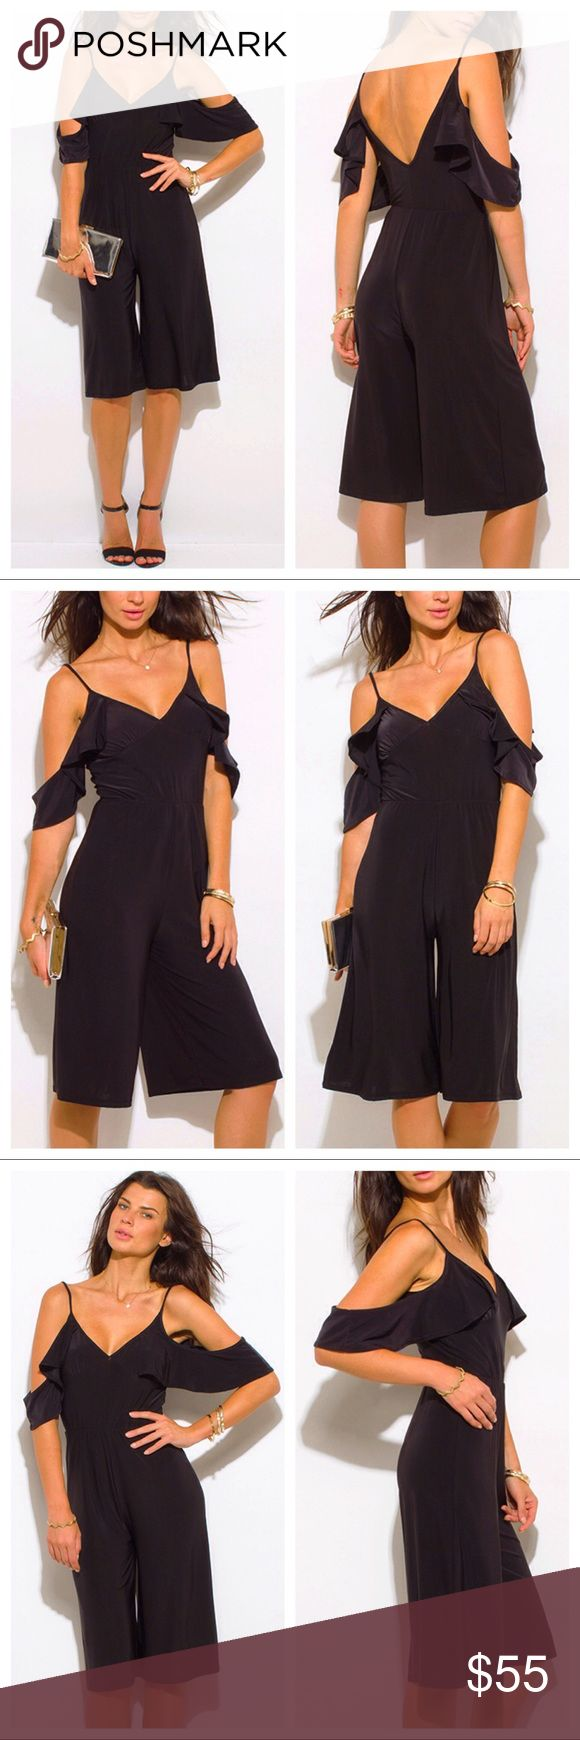 Black Off the Shoulder Flutter Sleeve Jumpsuit 🌻 NWT - Black Off the Shoulder Bustier V Neck Flutter Sleeve Wide Leg Evening Playsuit Jumpsuit. New, direct from maker. Great for Birthday, Anniversary, Gift, Present, Vacation, Cruise, Wedding, Pool, Cover Up, Date, Night, Spring, Summer, Sexy, Casual, lounging, Daytime, Party. 96% polyester/4% spandex. Pants Jumpsuits & Rompers